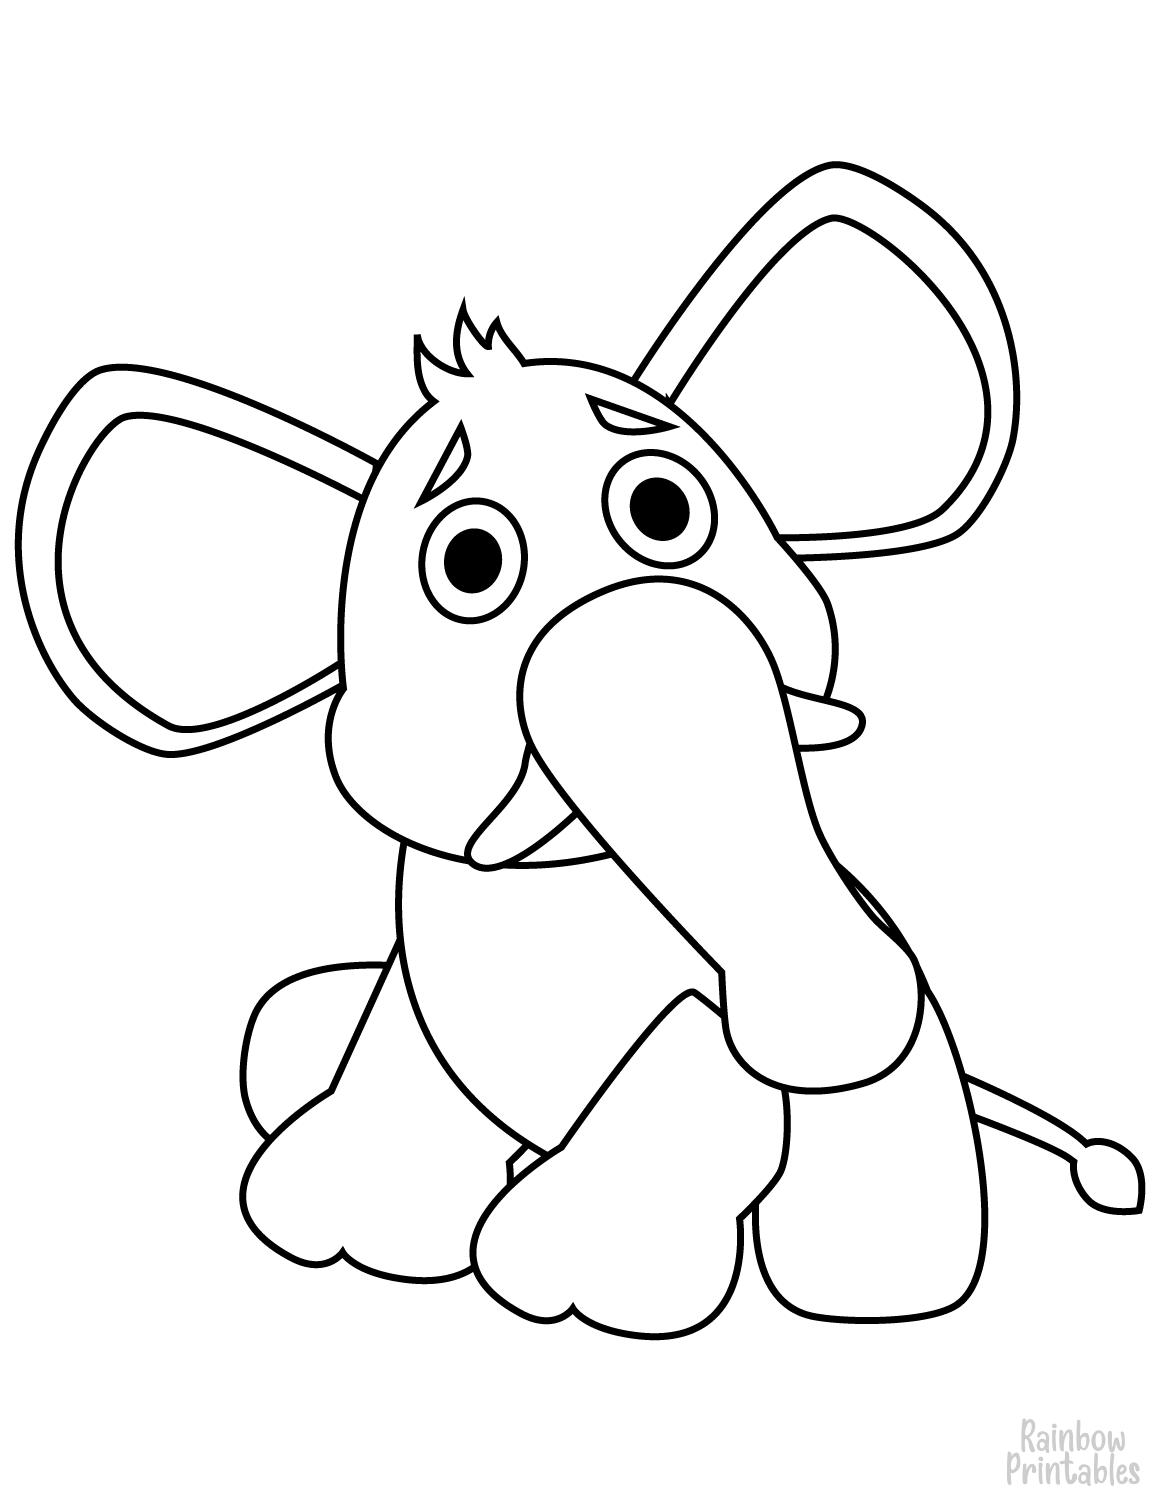 SAD STUFFED ELEPHANT TOY Clipart Coloring Pages for Kids Adults Art Activities Line Art